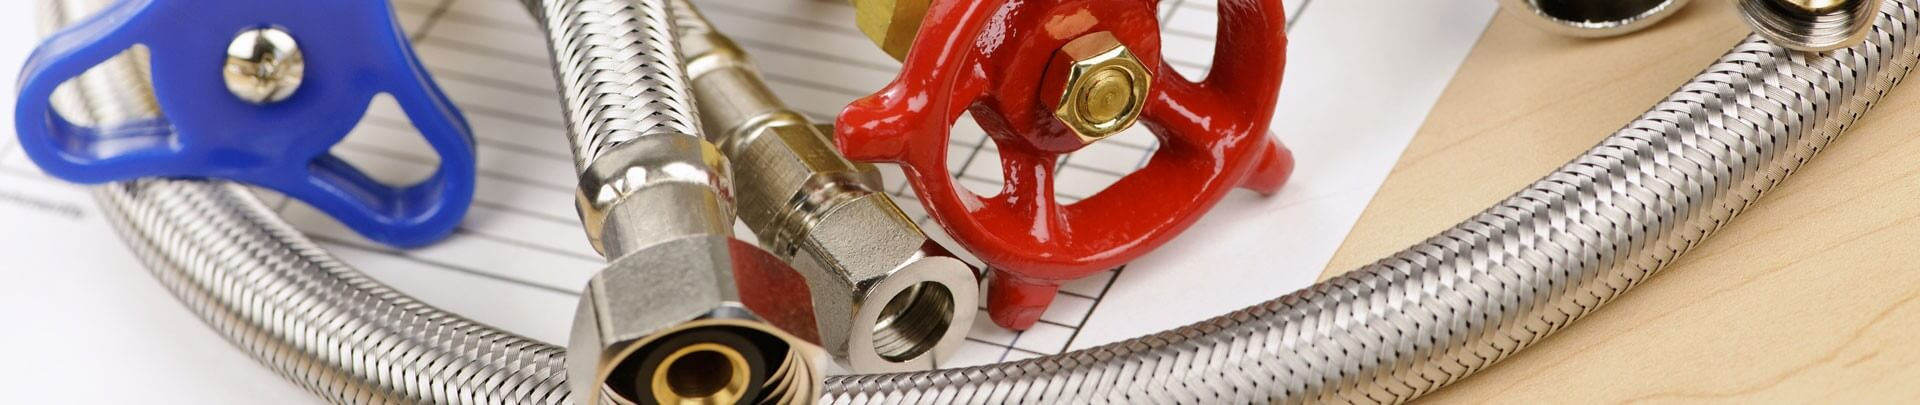 Experts Plumbing Services, LLC - Video Pipe Inspection